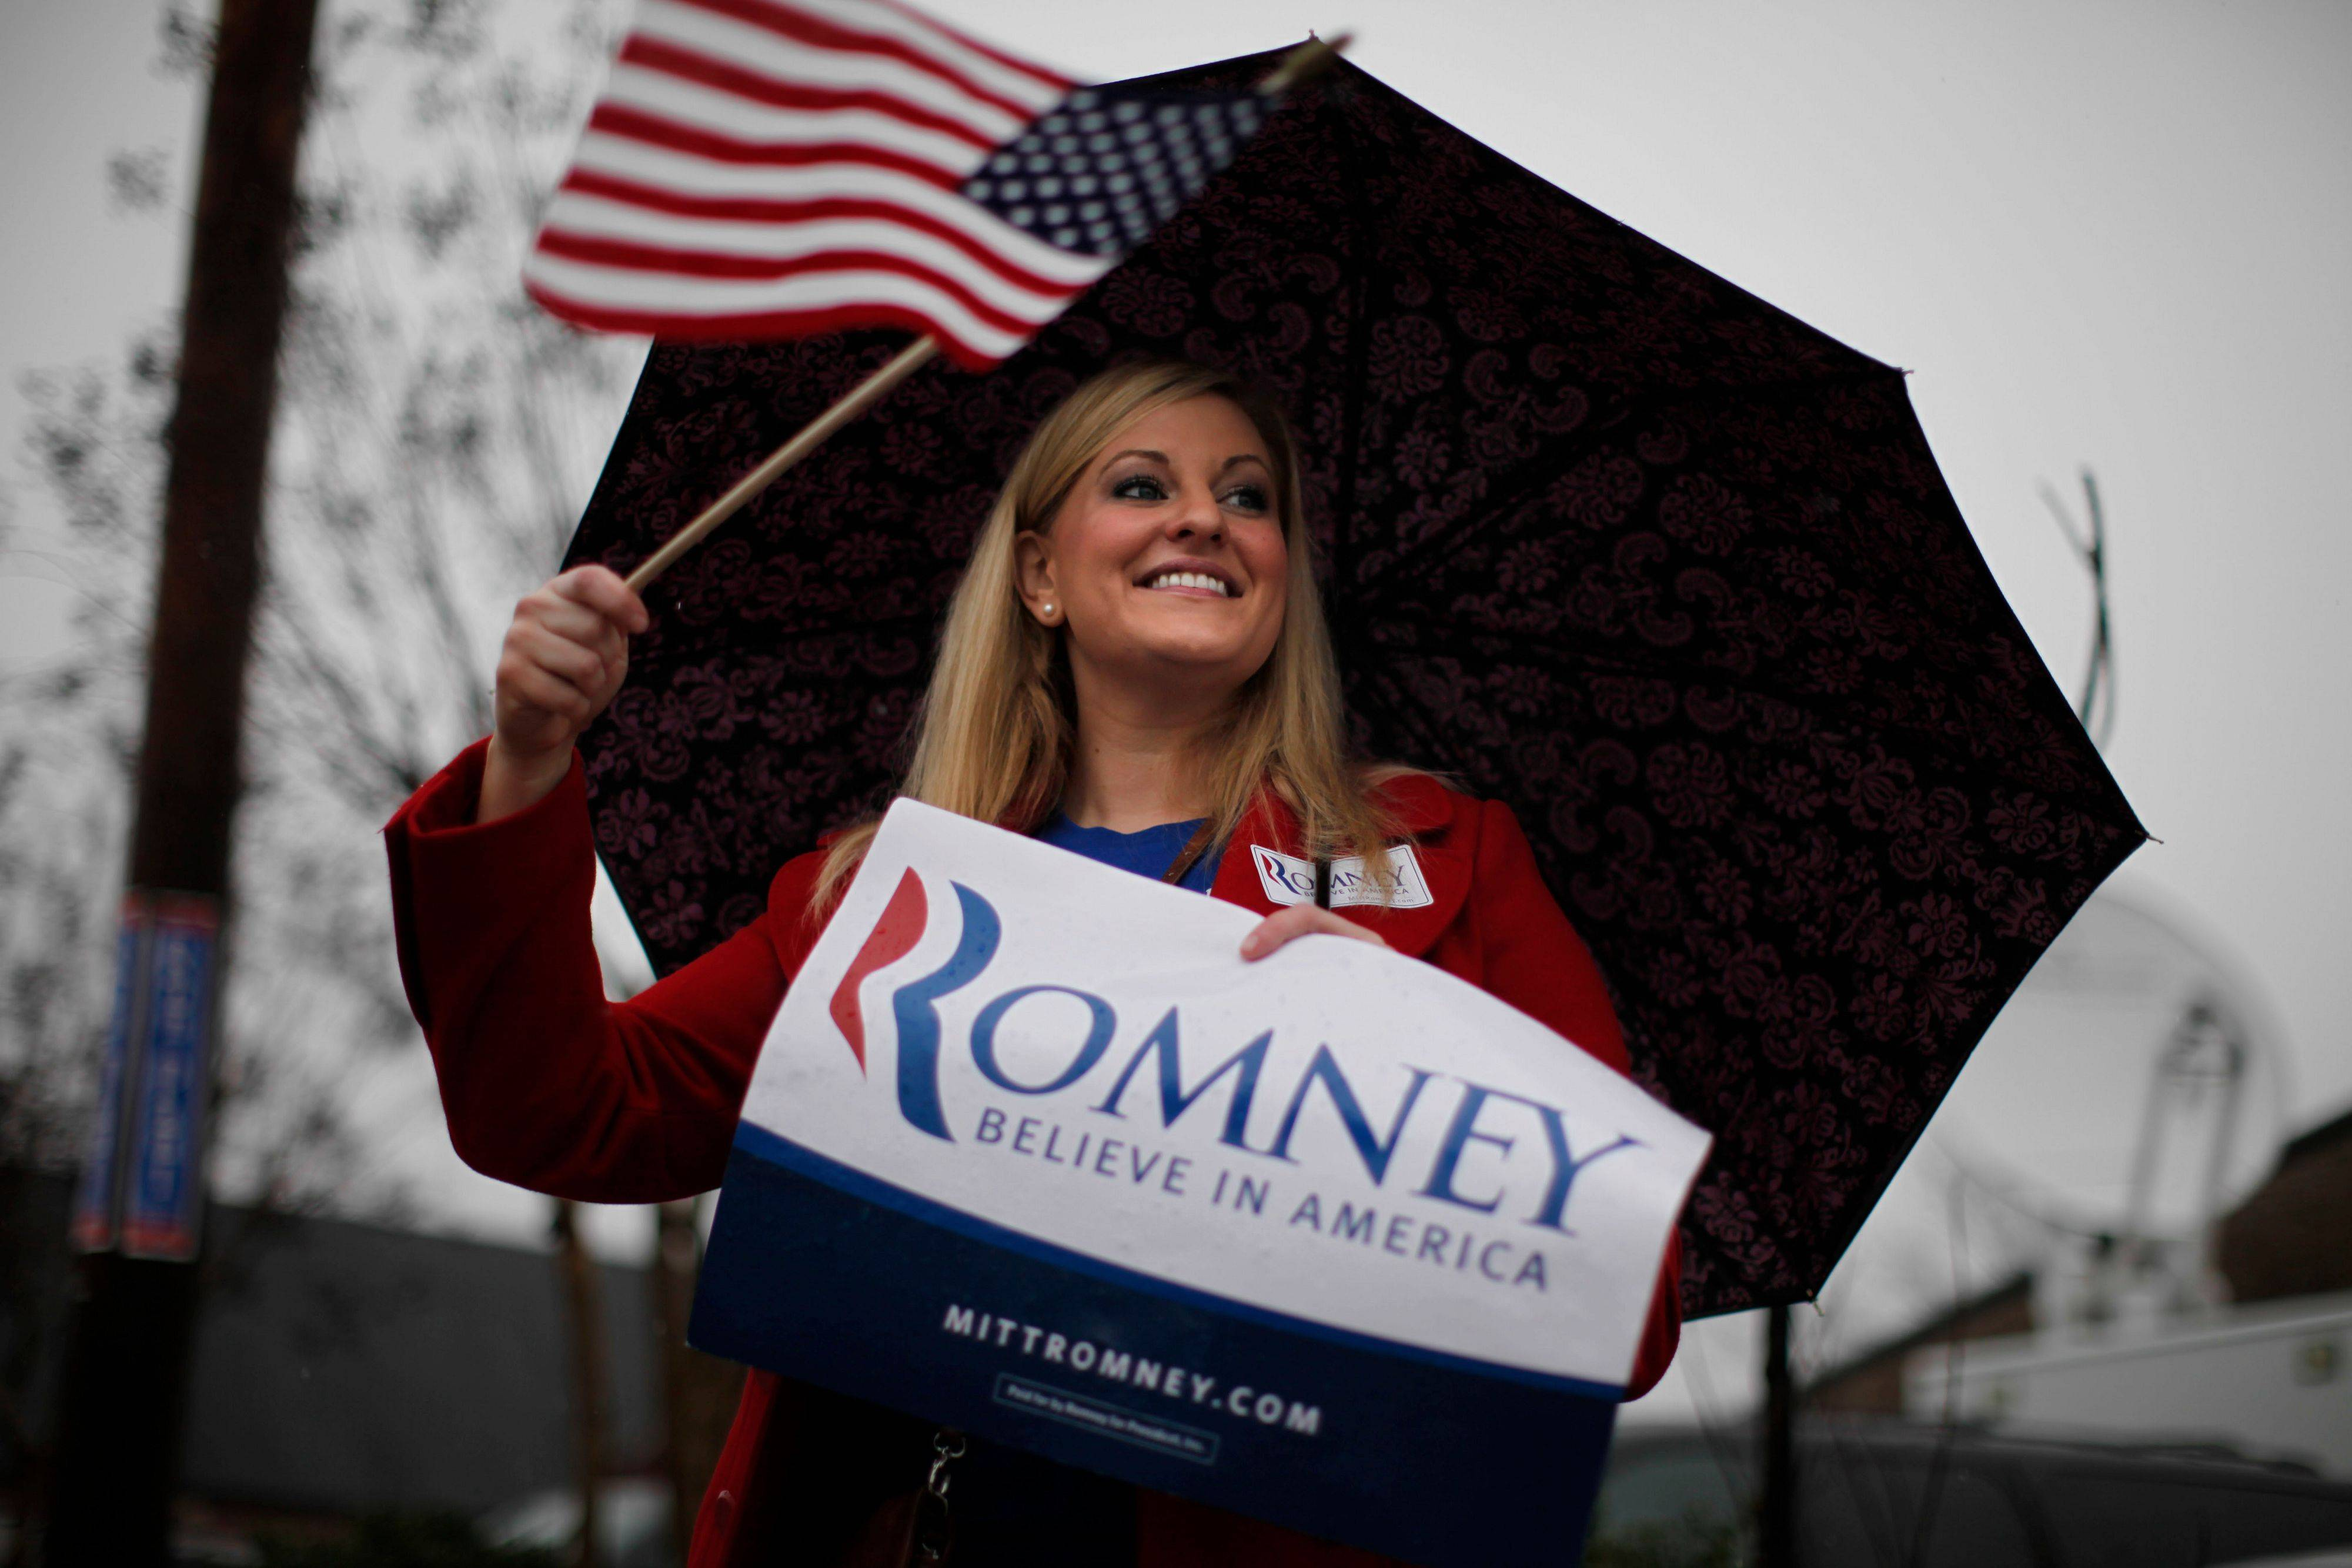 A supporter of Republican presidential candidate former Massachusetts Gov. Mitt Romney displays a sign Saturday during a rainstorm before campaign stops by two Republican presidential candidates, Romney and former House Speaker Newt Gingrich, at Tommyís Country Ham House in Greenville, S.C.